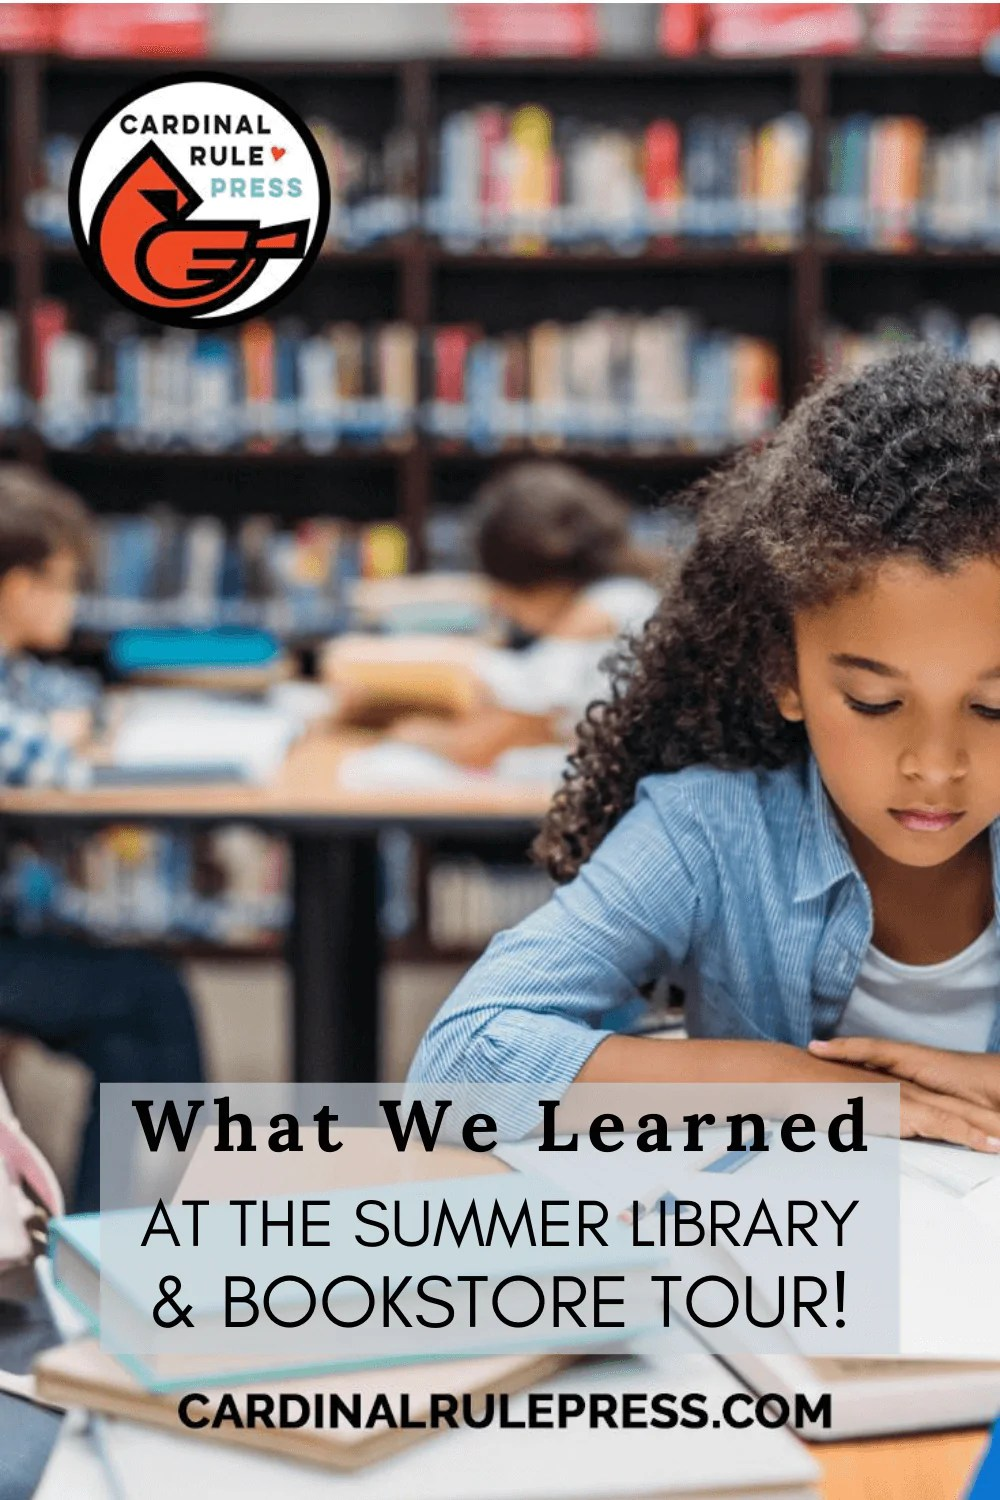 What We Learned At The Summer Library & Bookstore Tour!